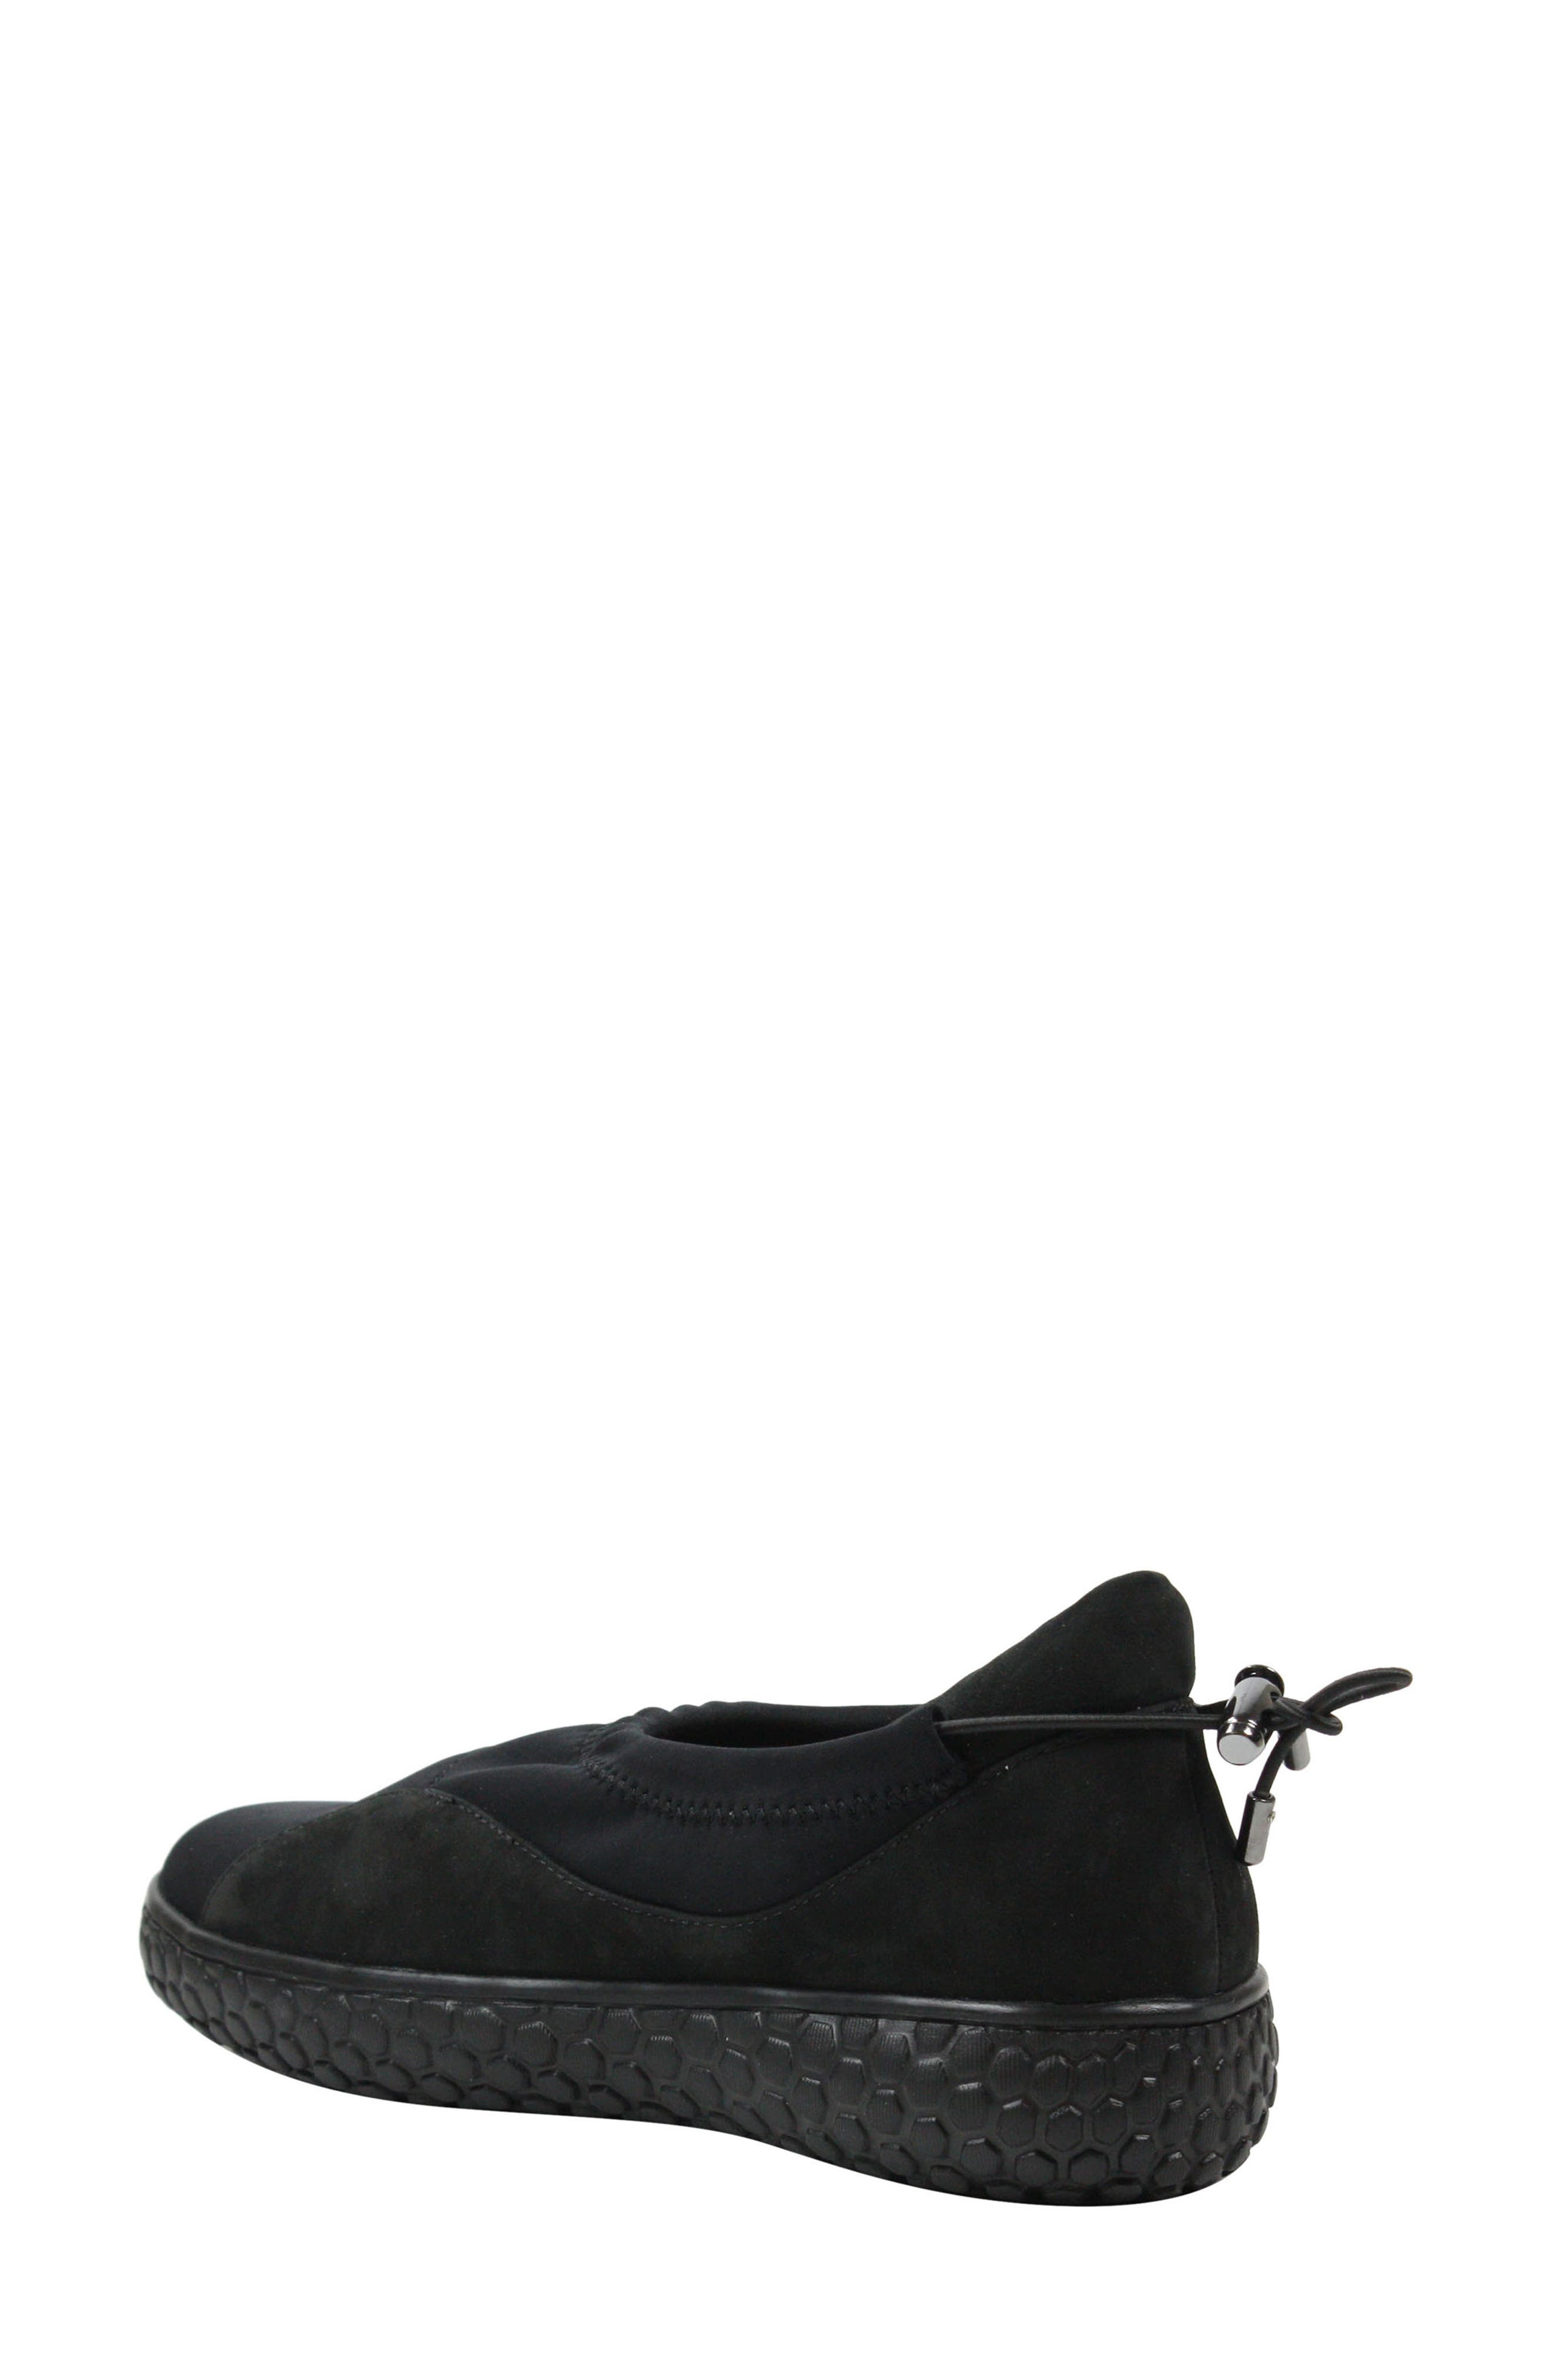 Zaidee Flat,                             Alternate thumbnail 2, color,                             BLACK NUBUCK LEATHER